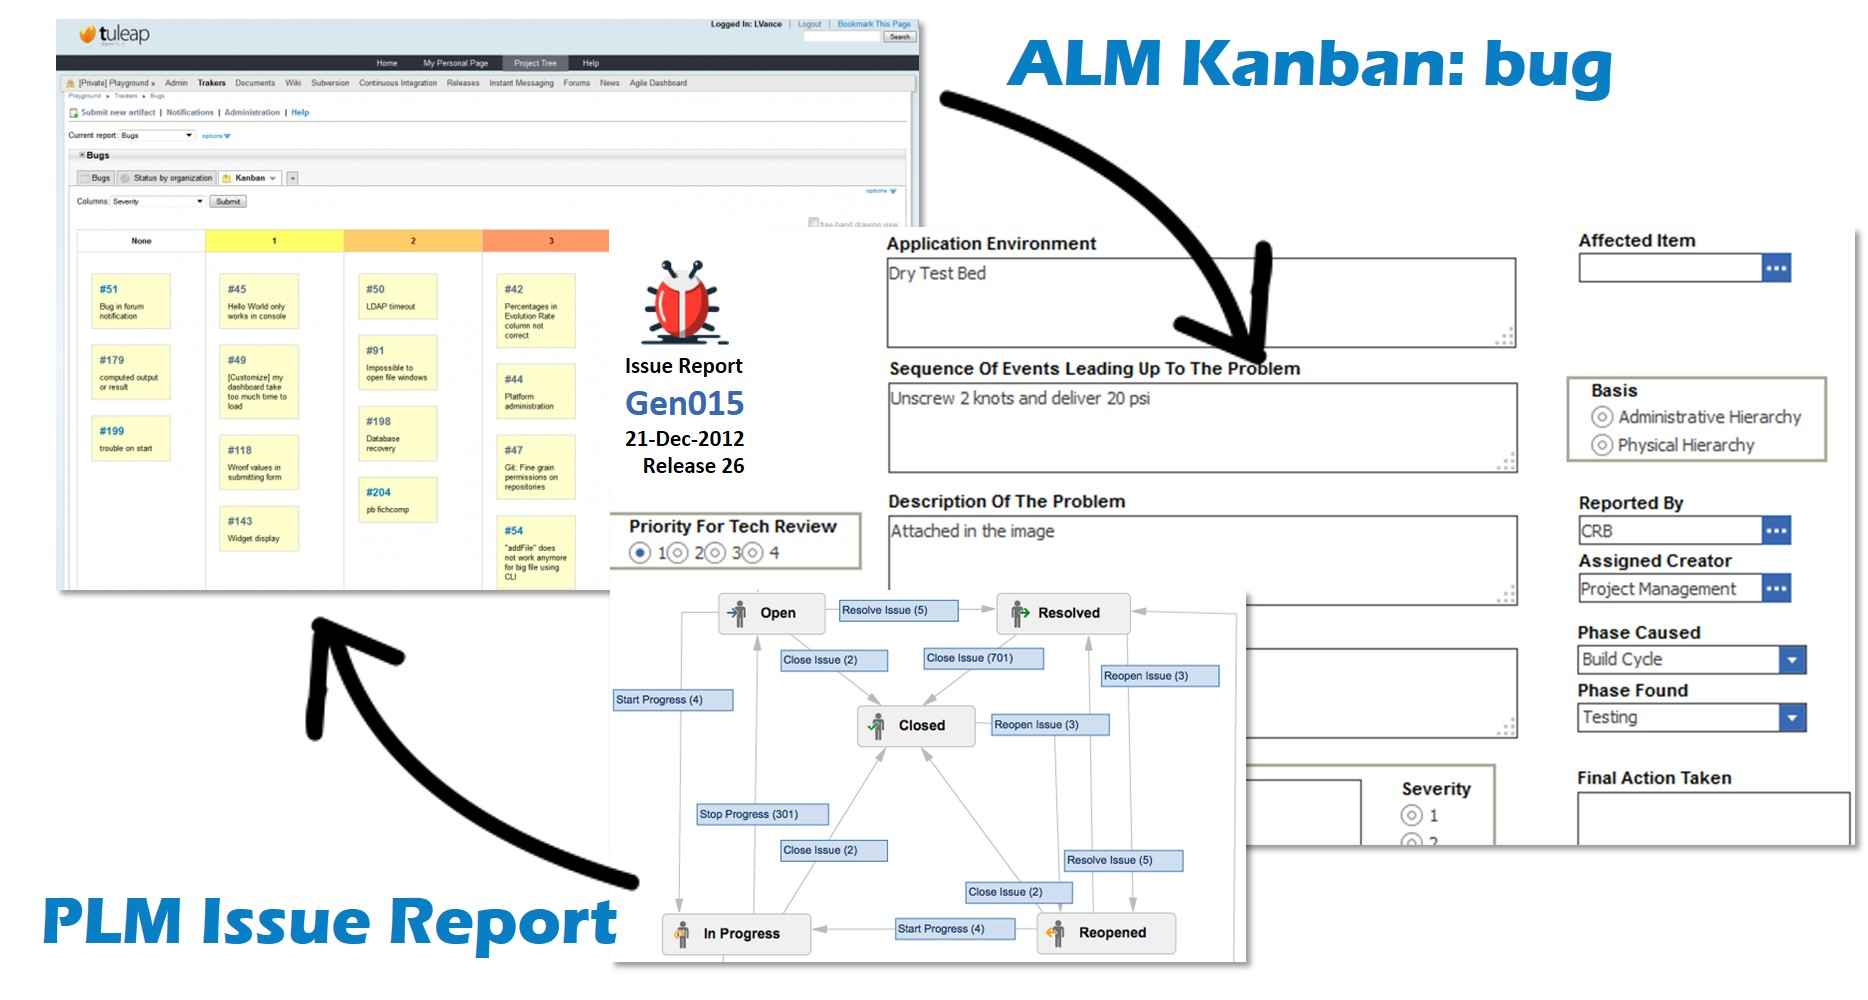 PLM-ALM Enterprise Integration - Mechatronics Enabled Product Structure